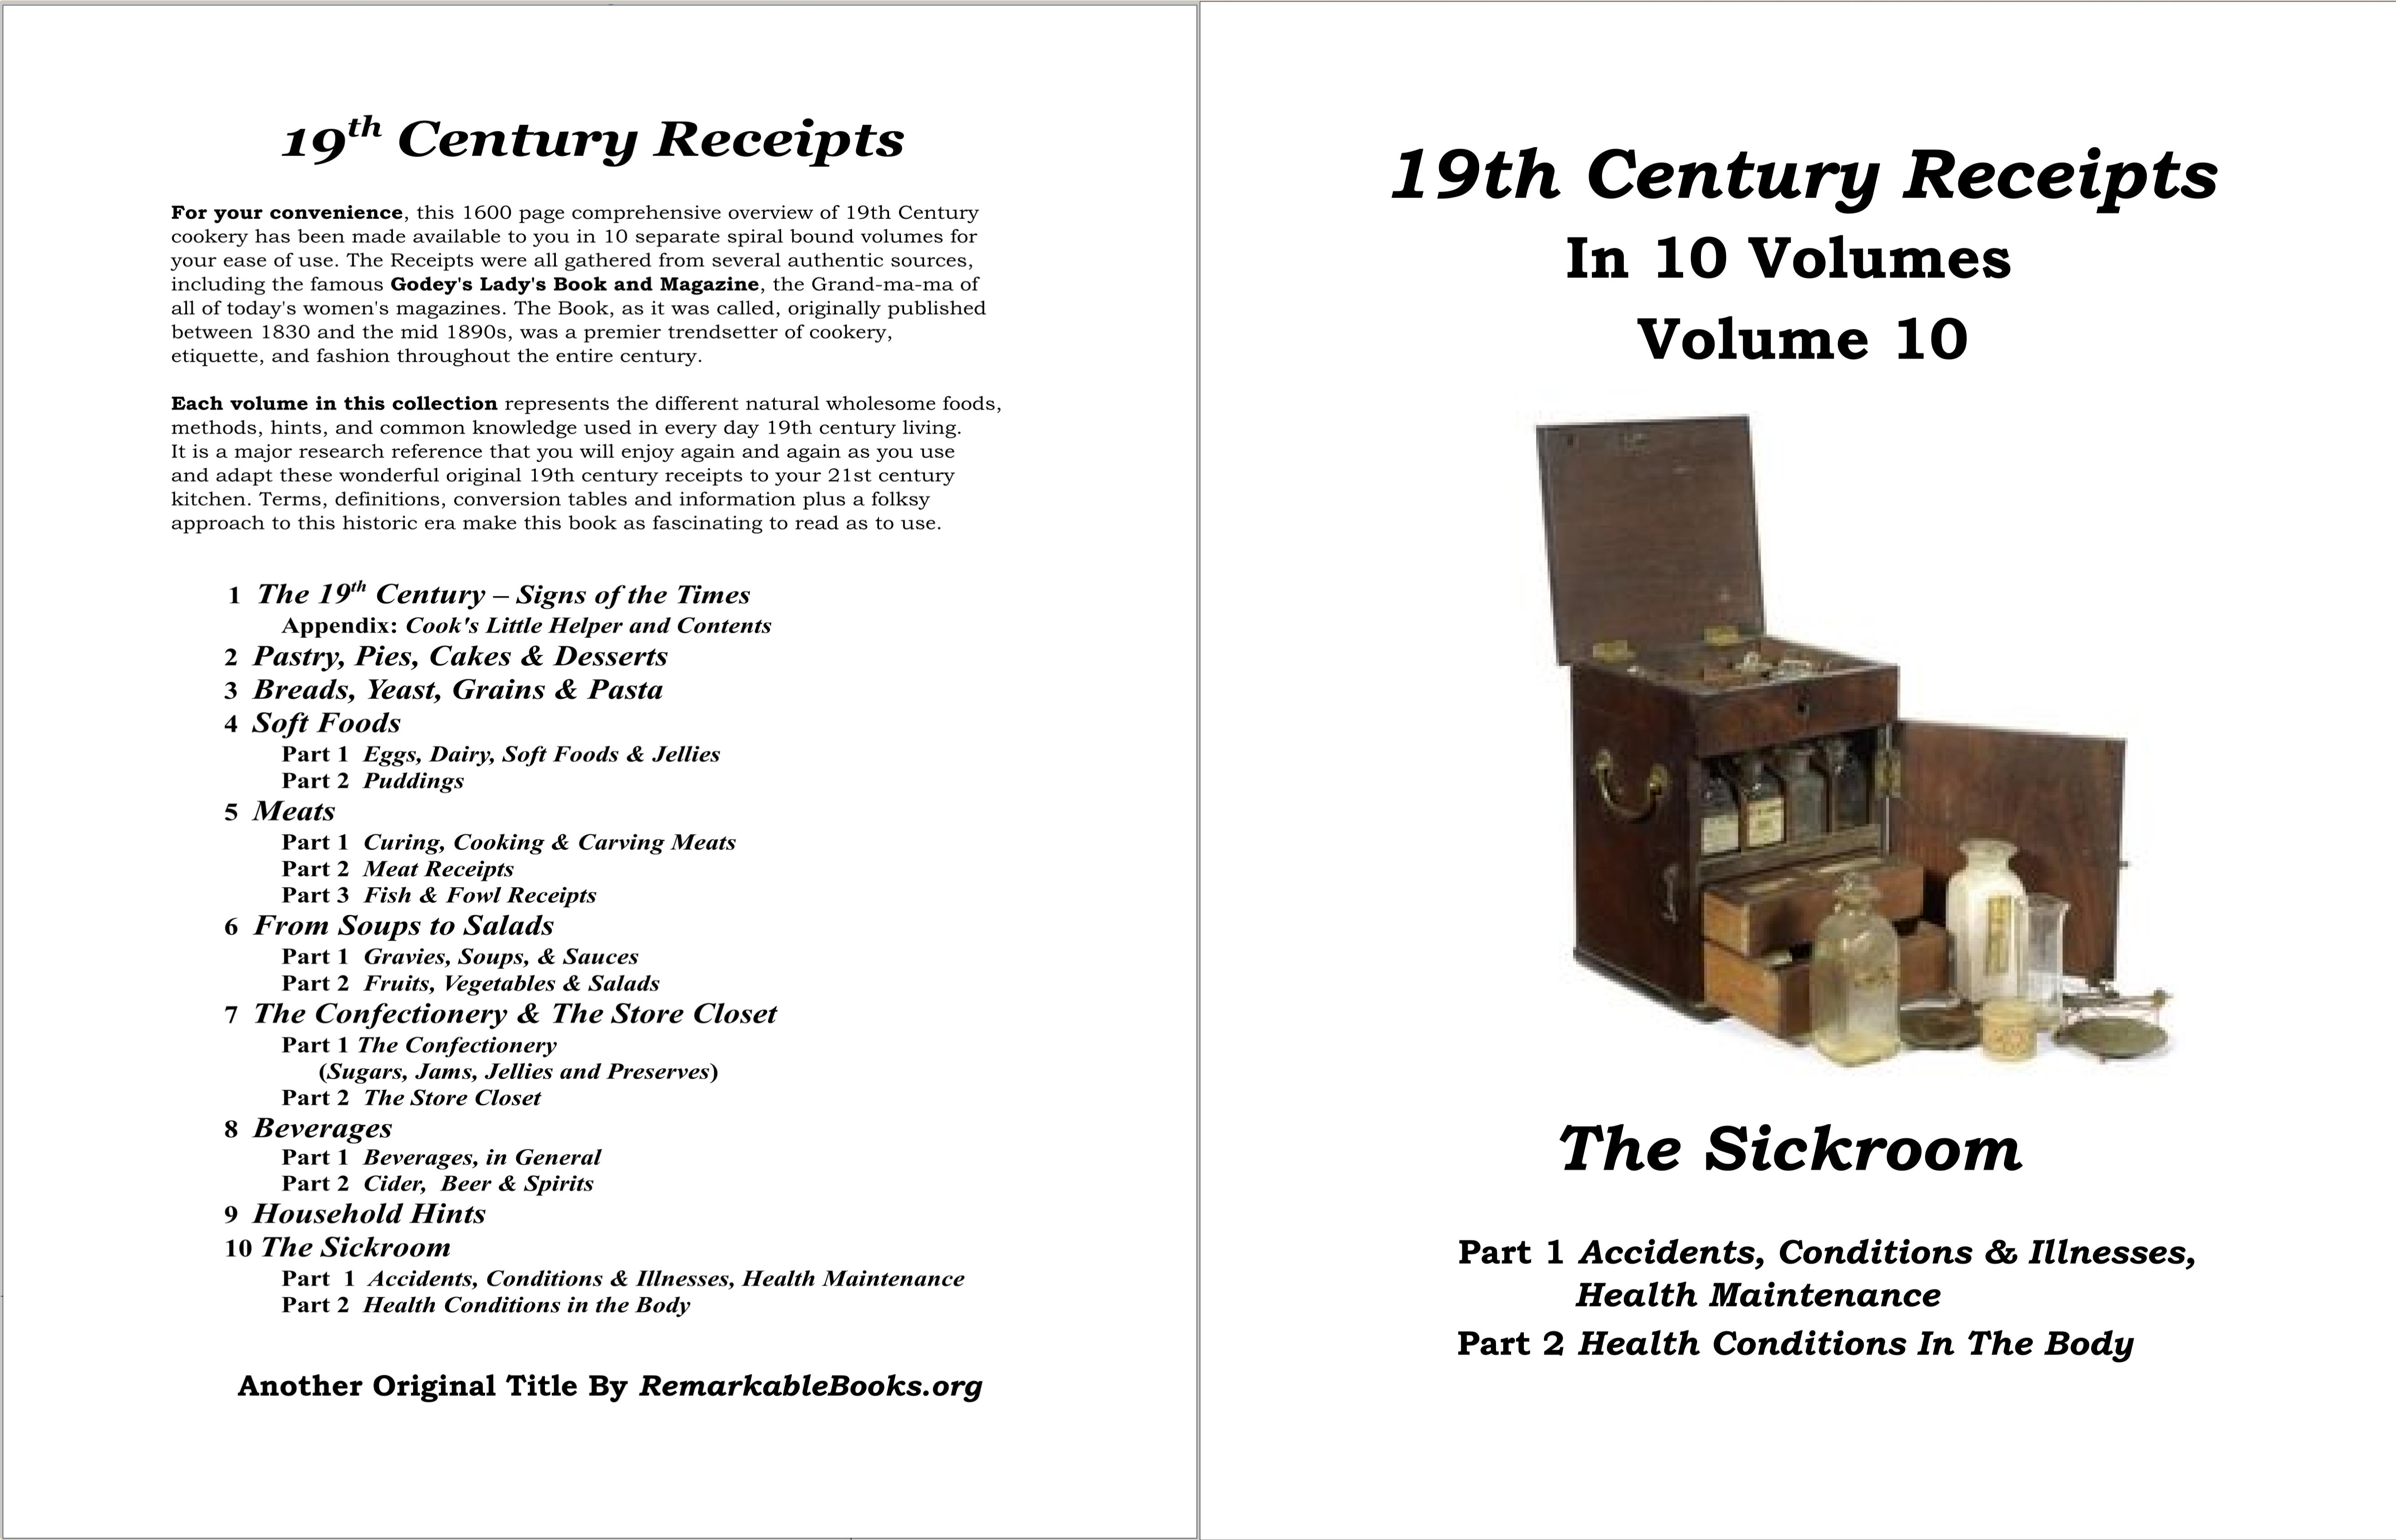 19th Century Receipts Volume 10 cover image